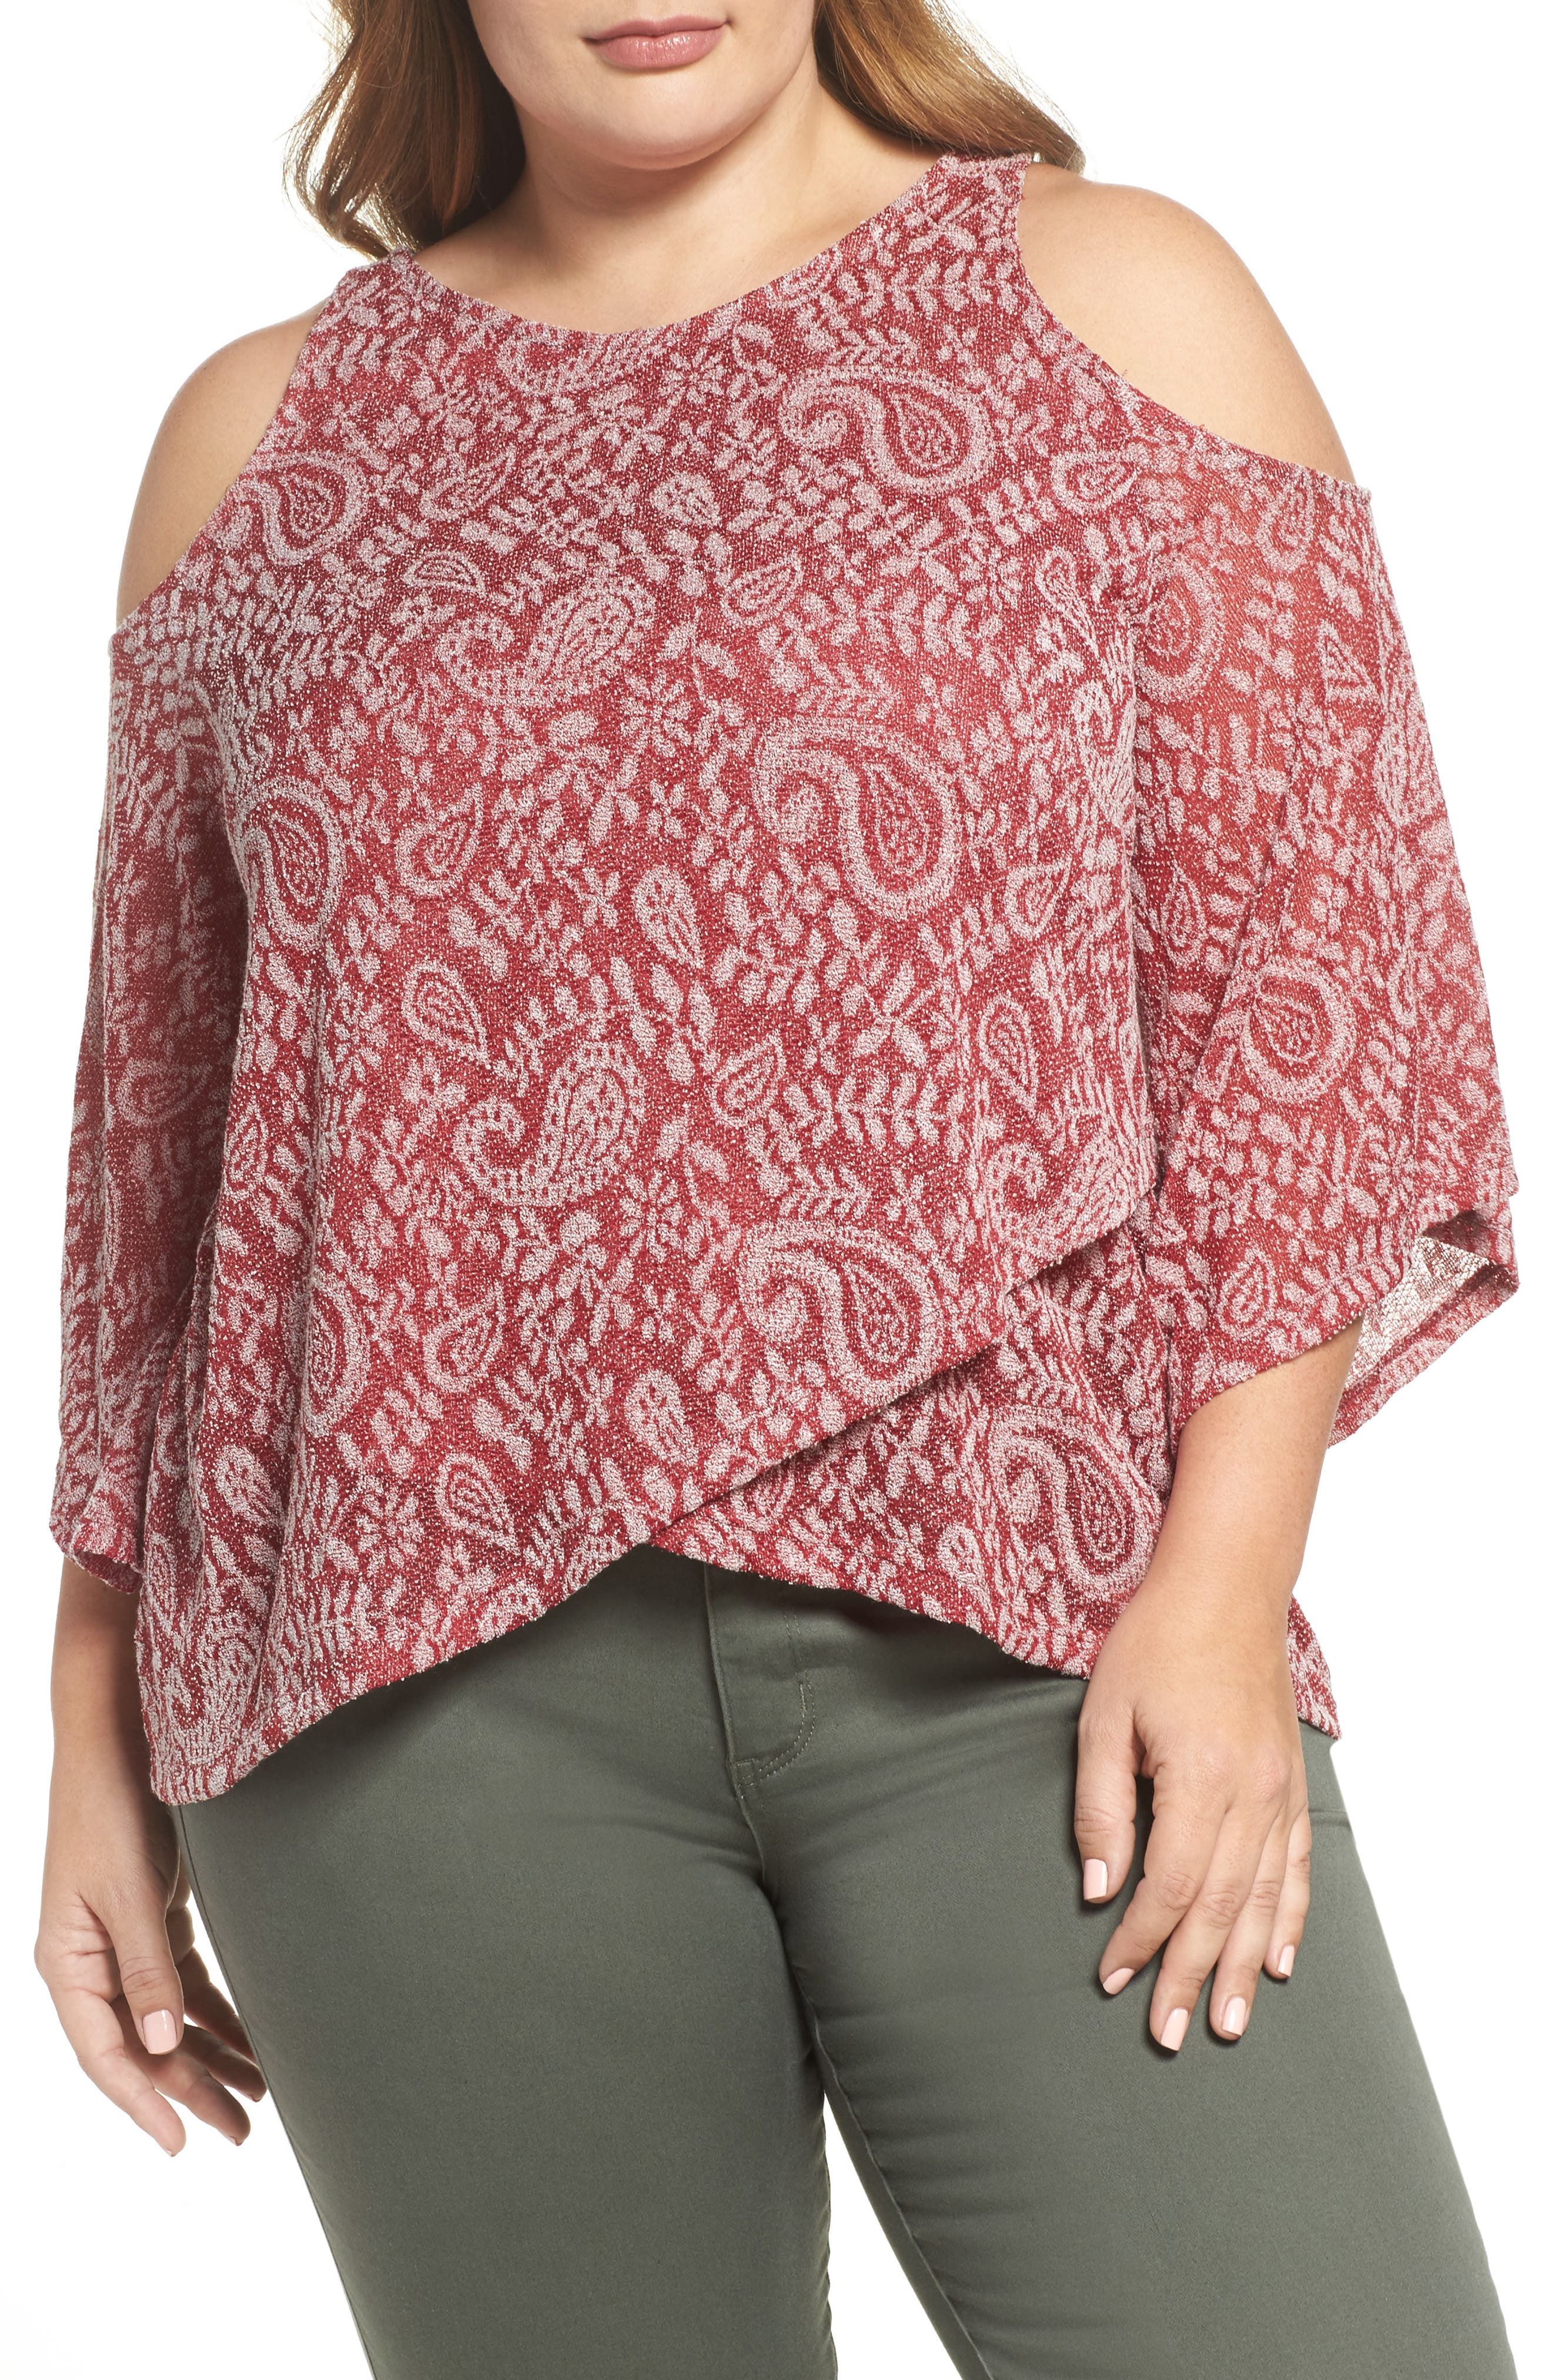 Alternate Image 1 Selected - Lucky Brand Cold Shoulder Paisley Top (Plus Size)